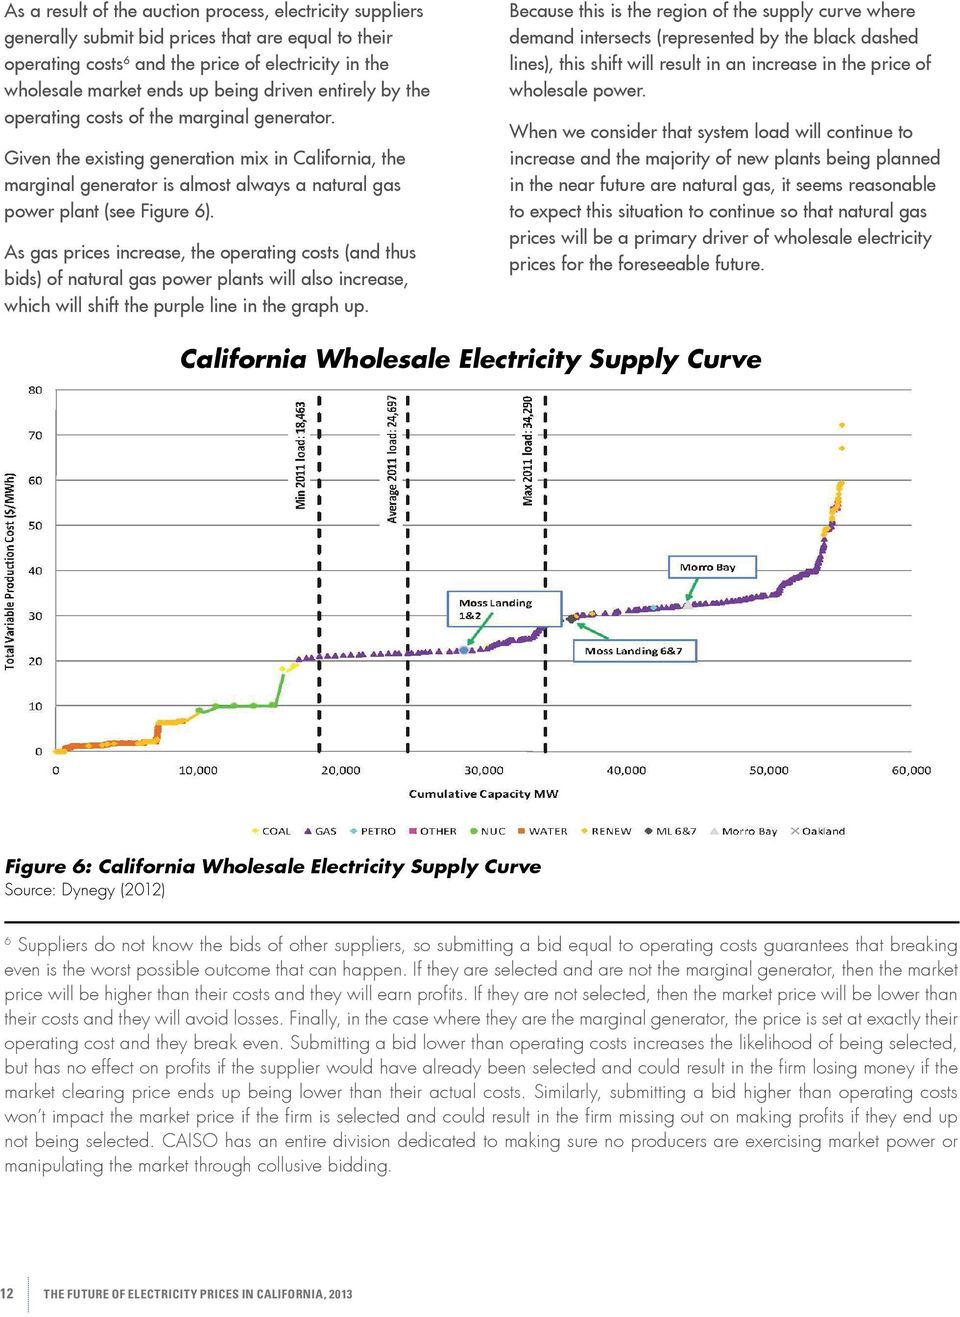 As gas prices increase, the operating costs (and thus bids) of natural gas power plants will also increase, which will shift the purple line in the graph up.